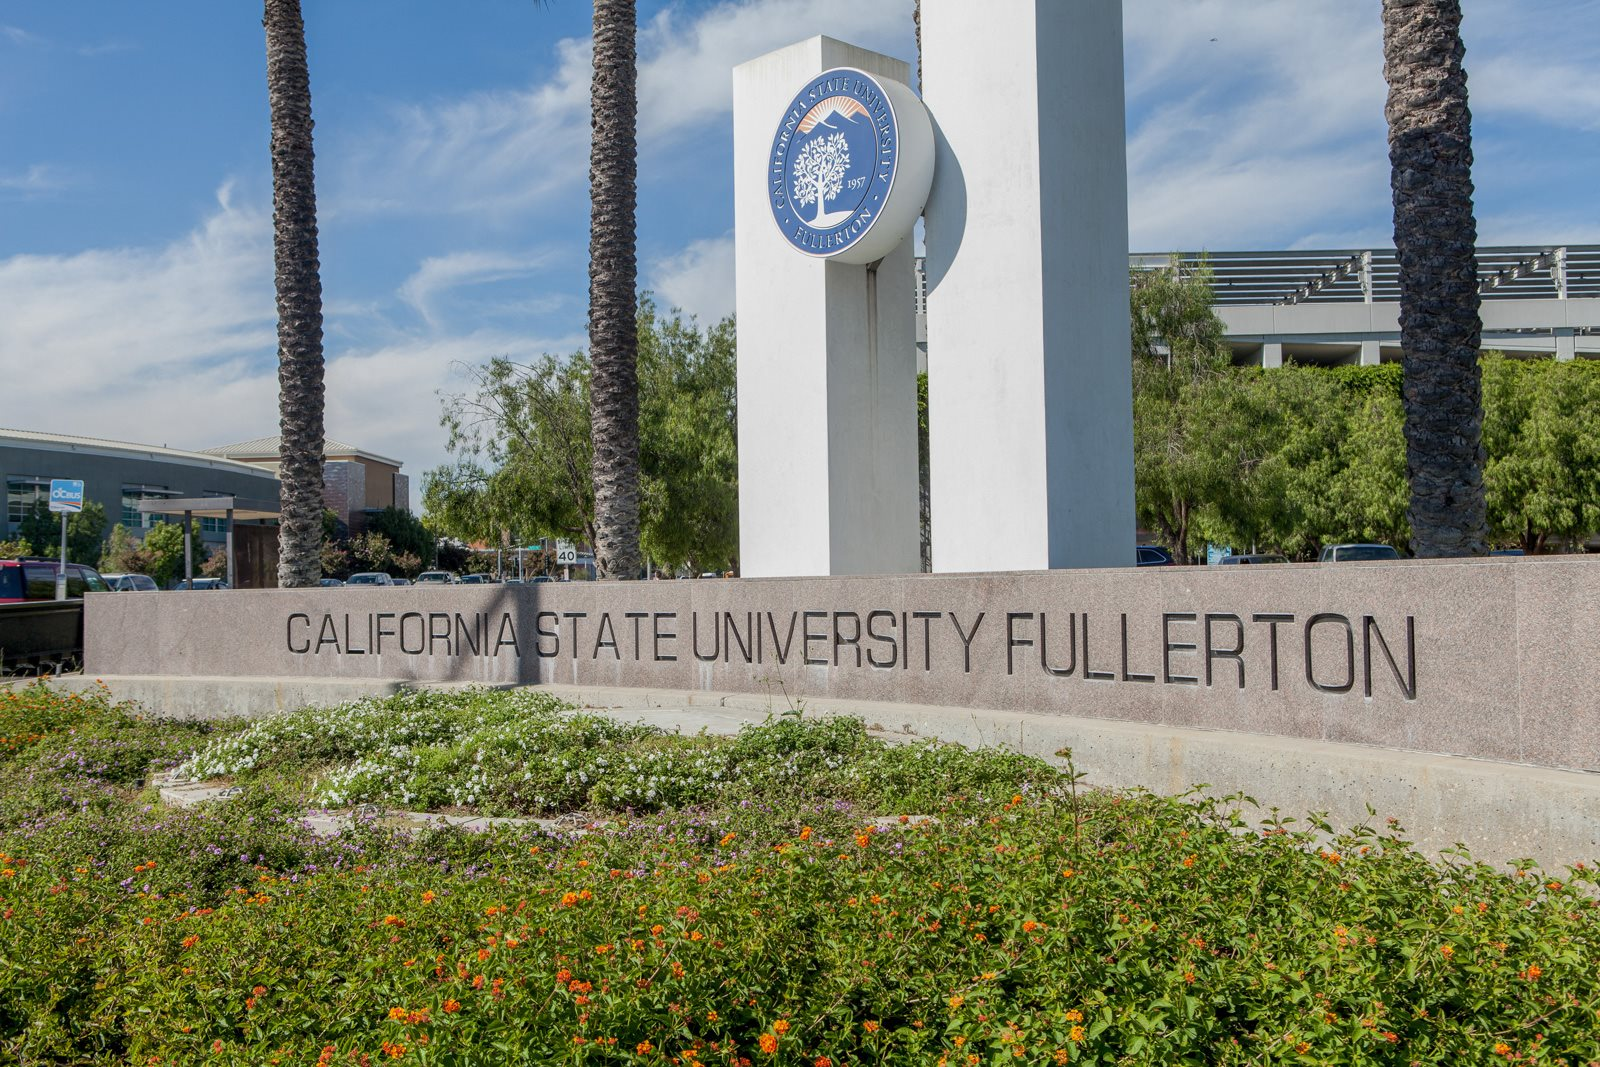 Easy Access To California State University Fullerton at Malden Station by Windsor, Fullerton, CA